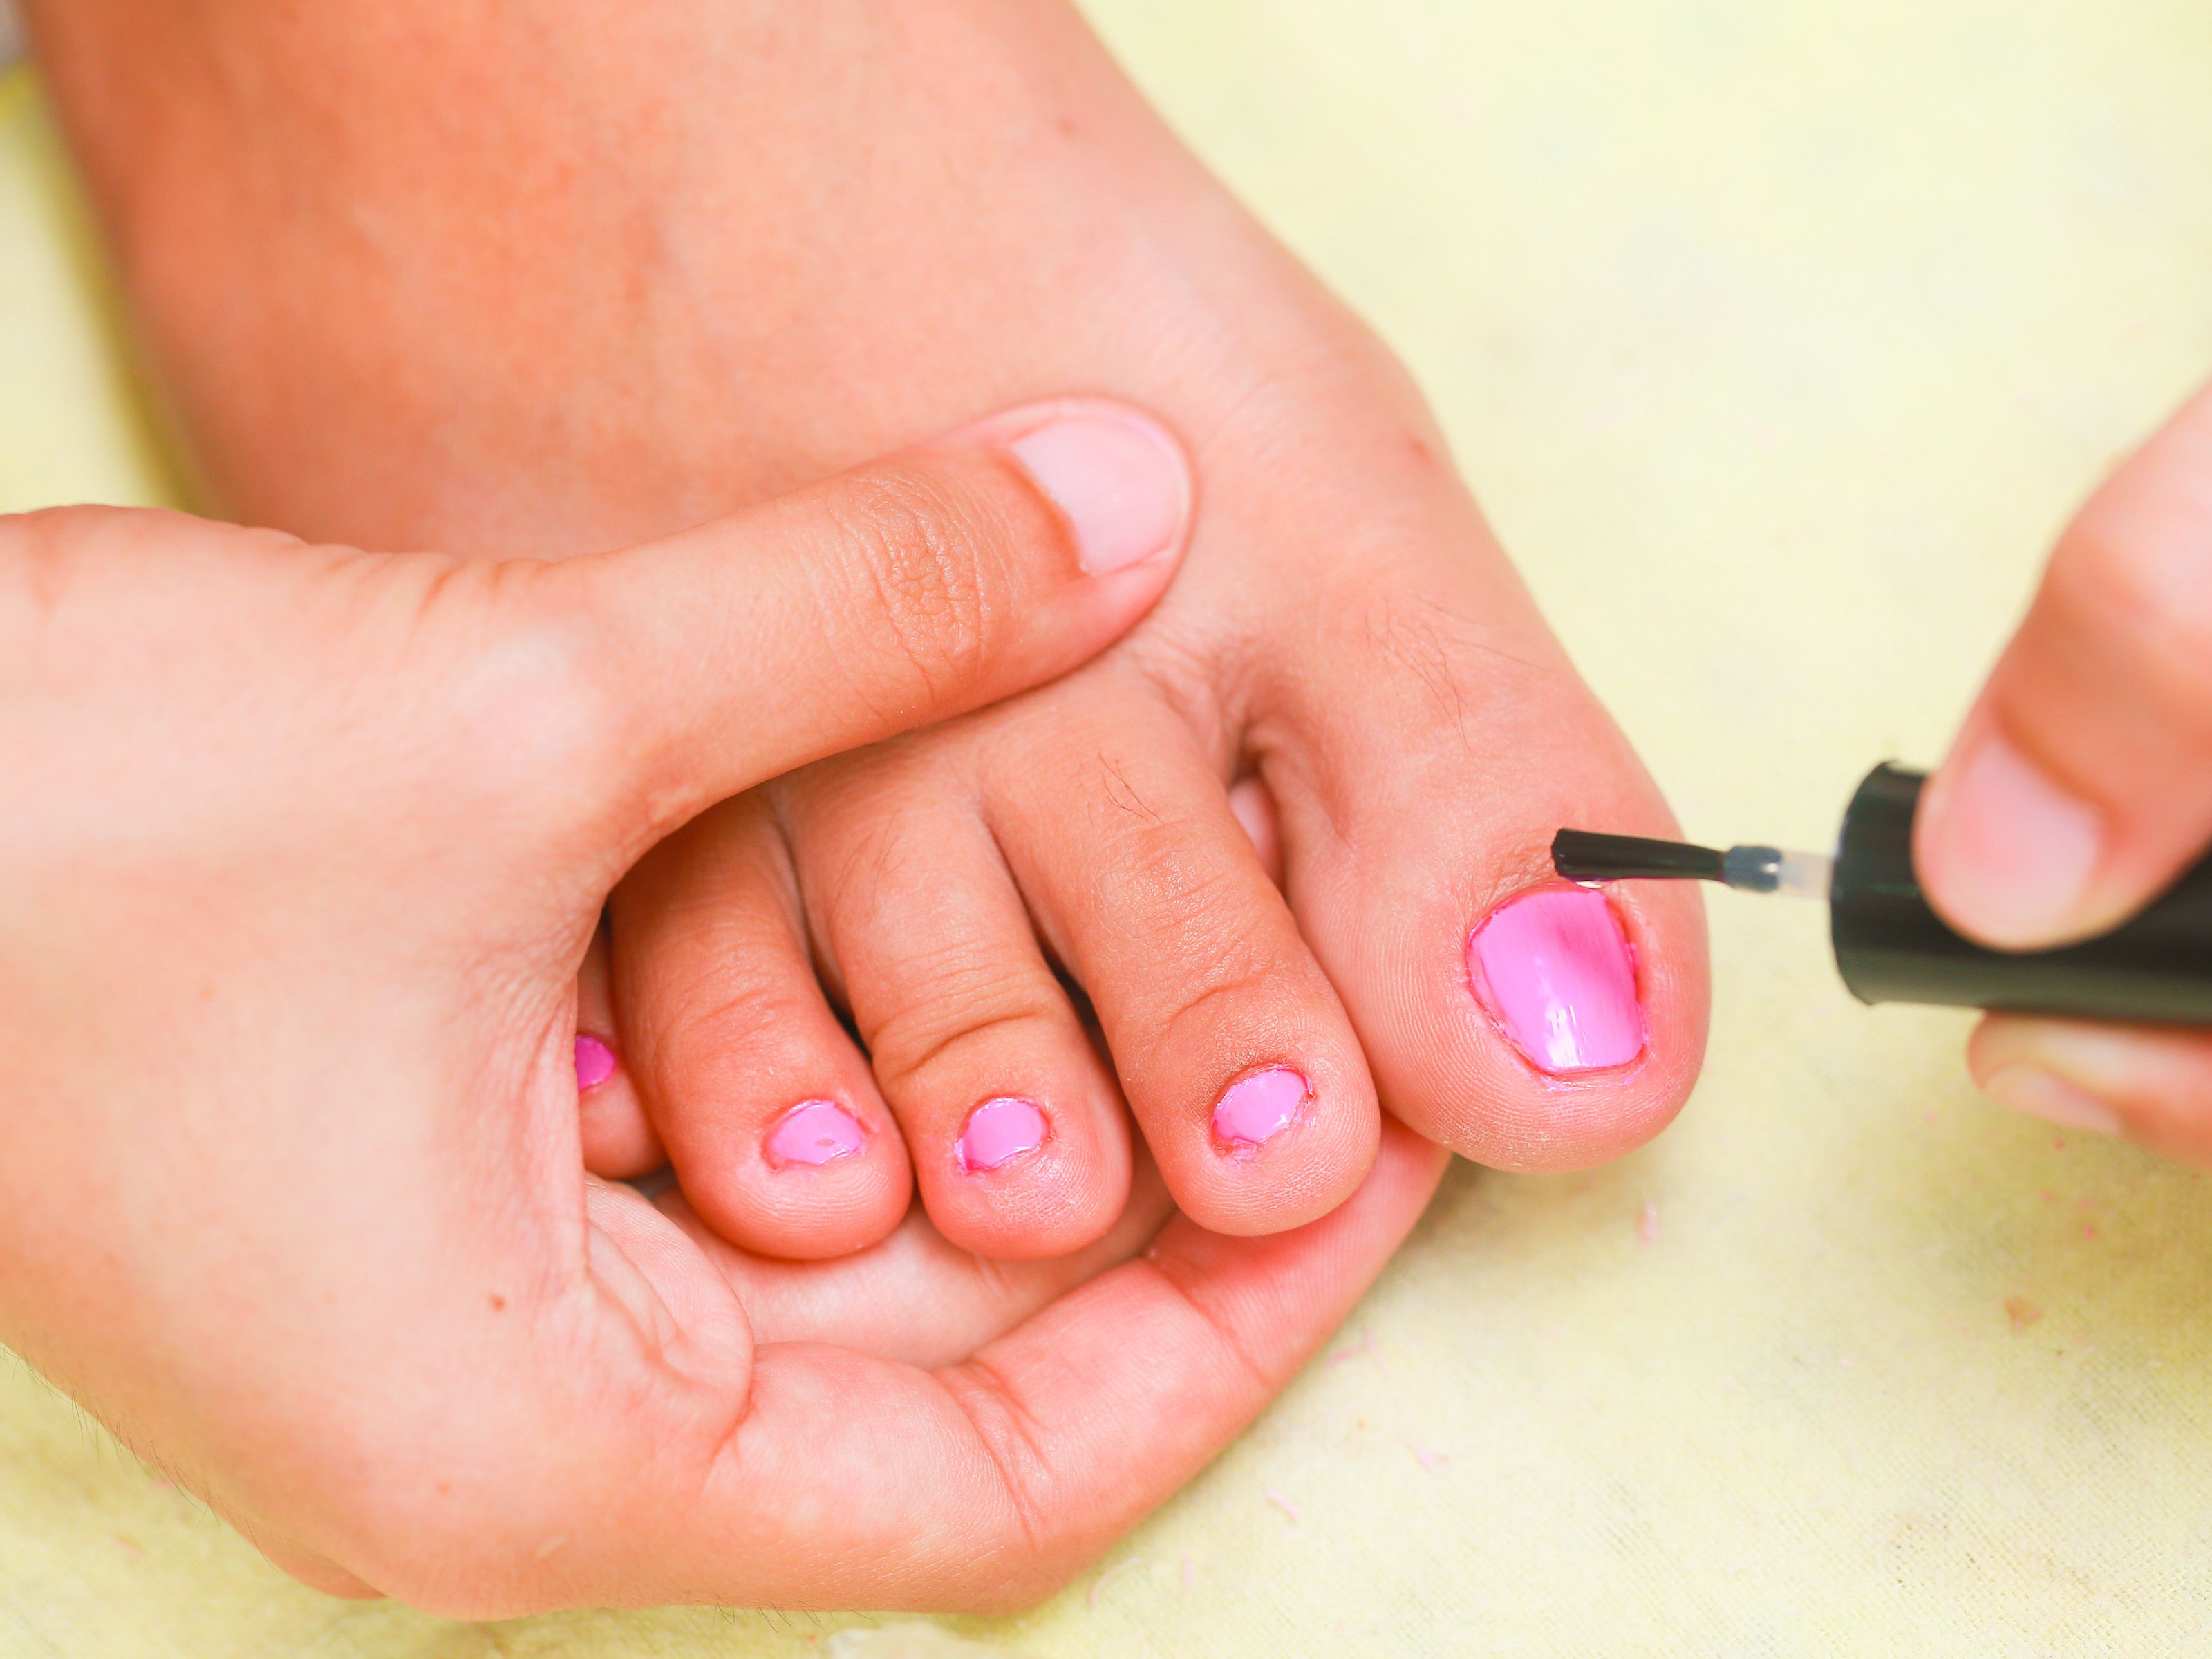 manicure and pedicure at home tips in hindi language Pedicure